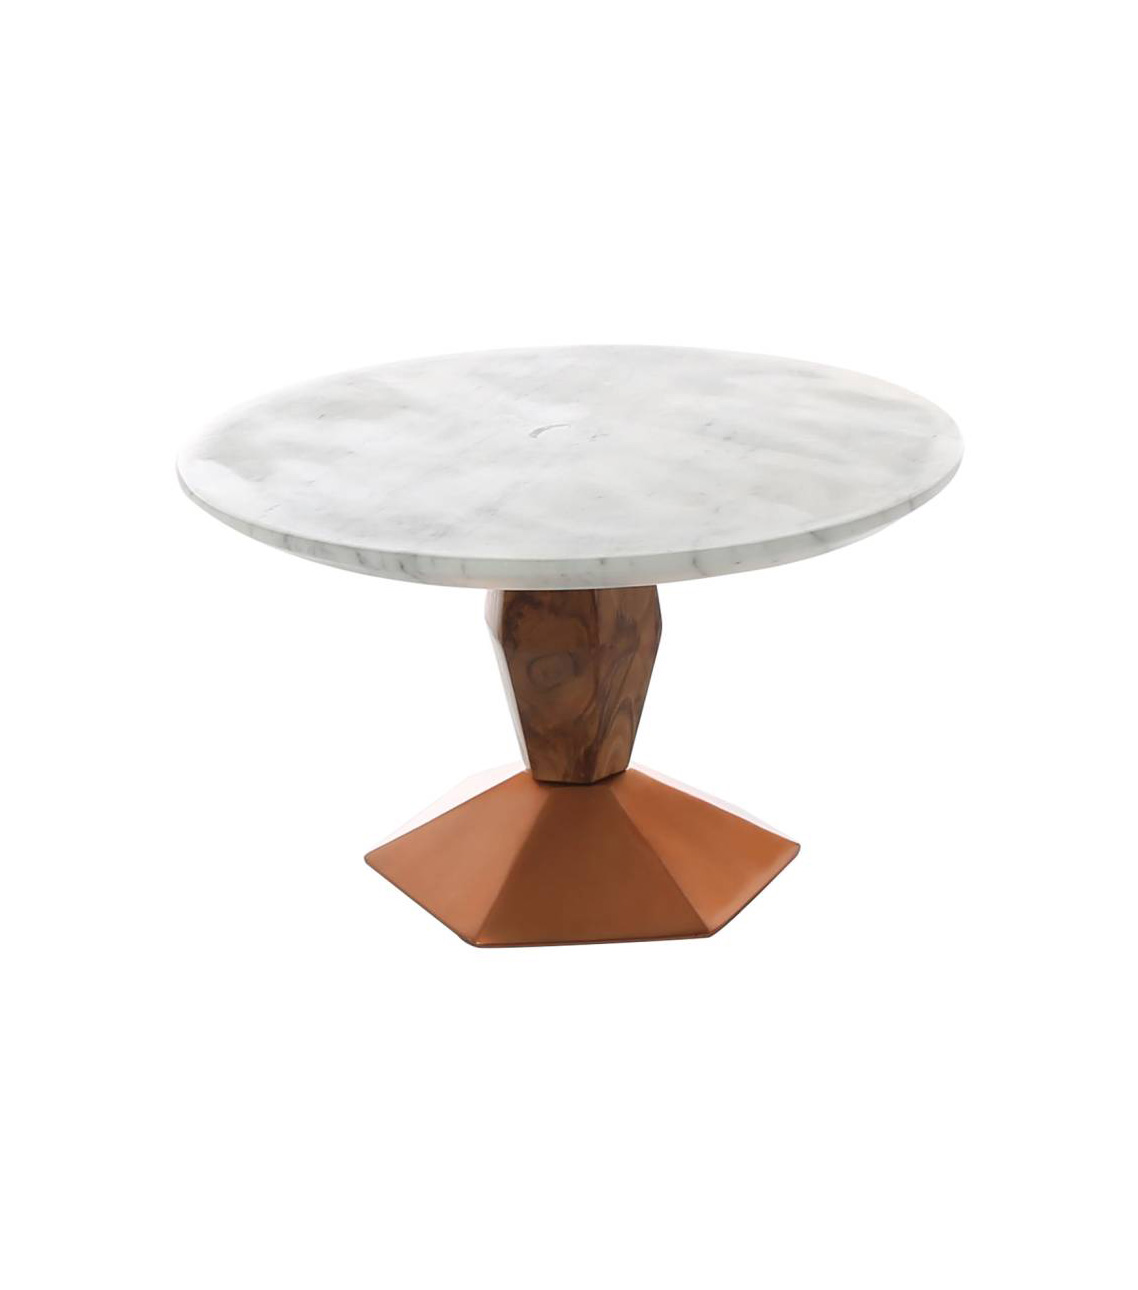 Marble & Wood Cake Stand with Copper Base